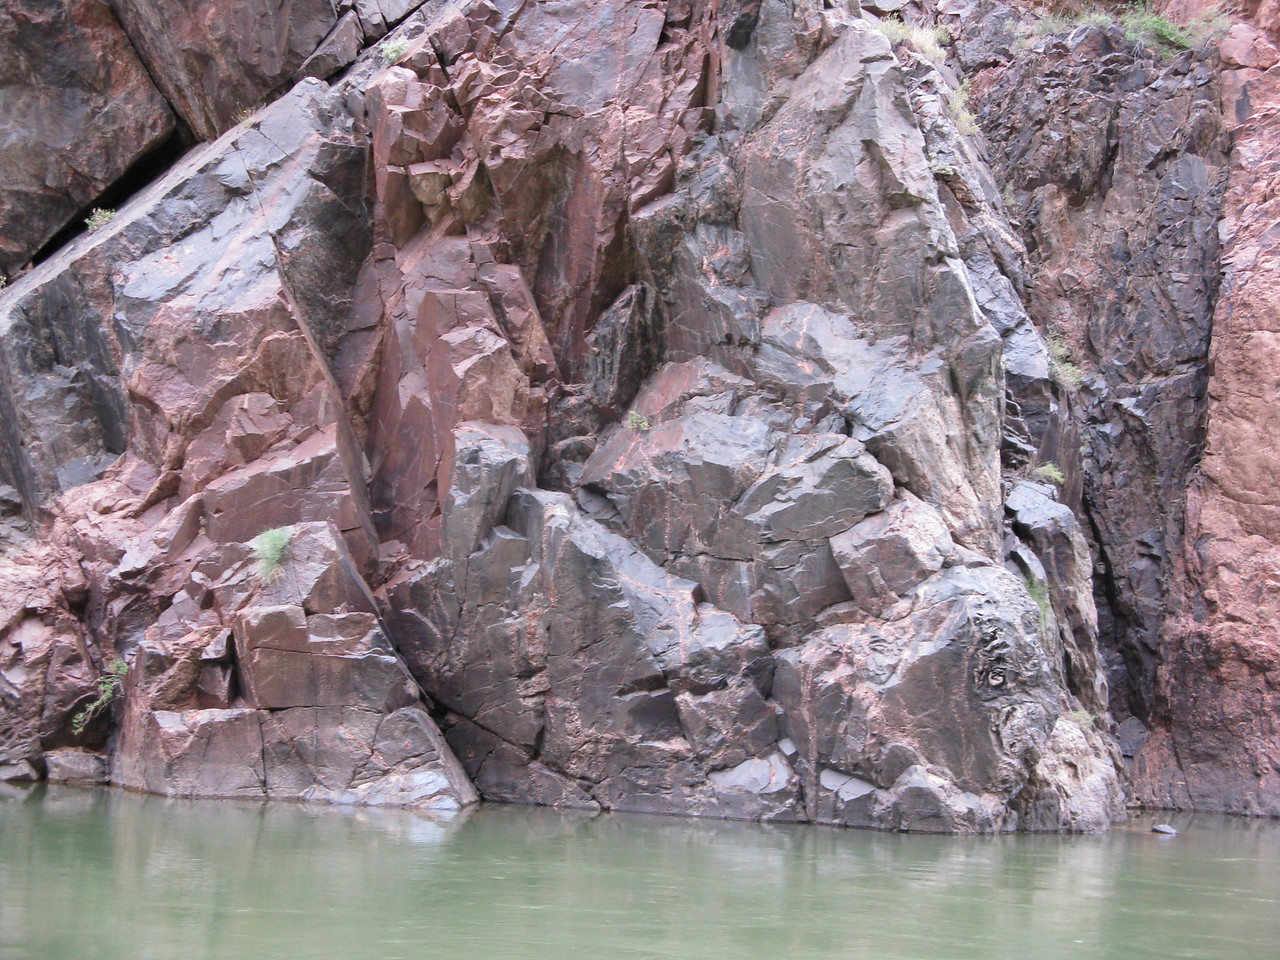 There are no apparent patterns in this metamorphic rock, compared to the neat horizontal layers of sedimentary rock upriver in Marble Canyon.